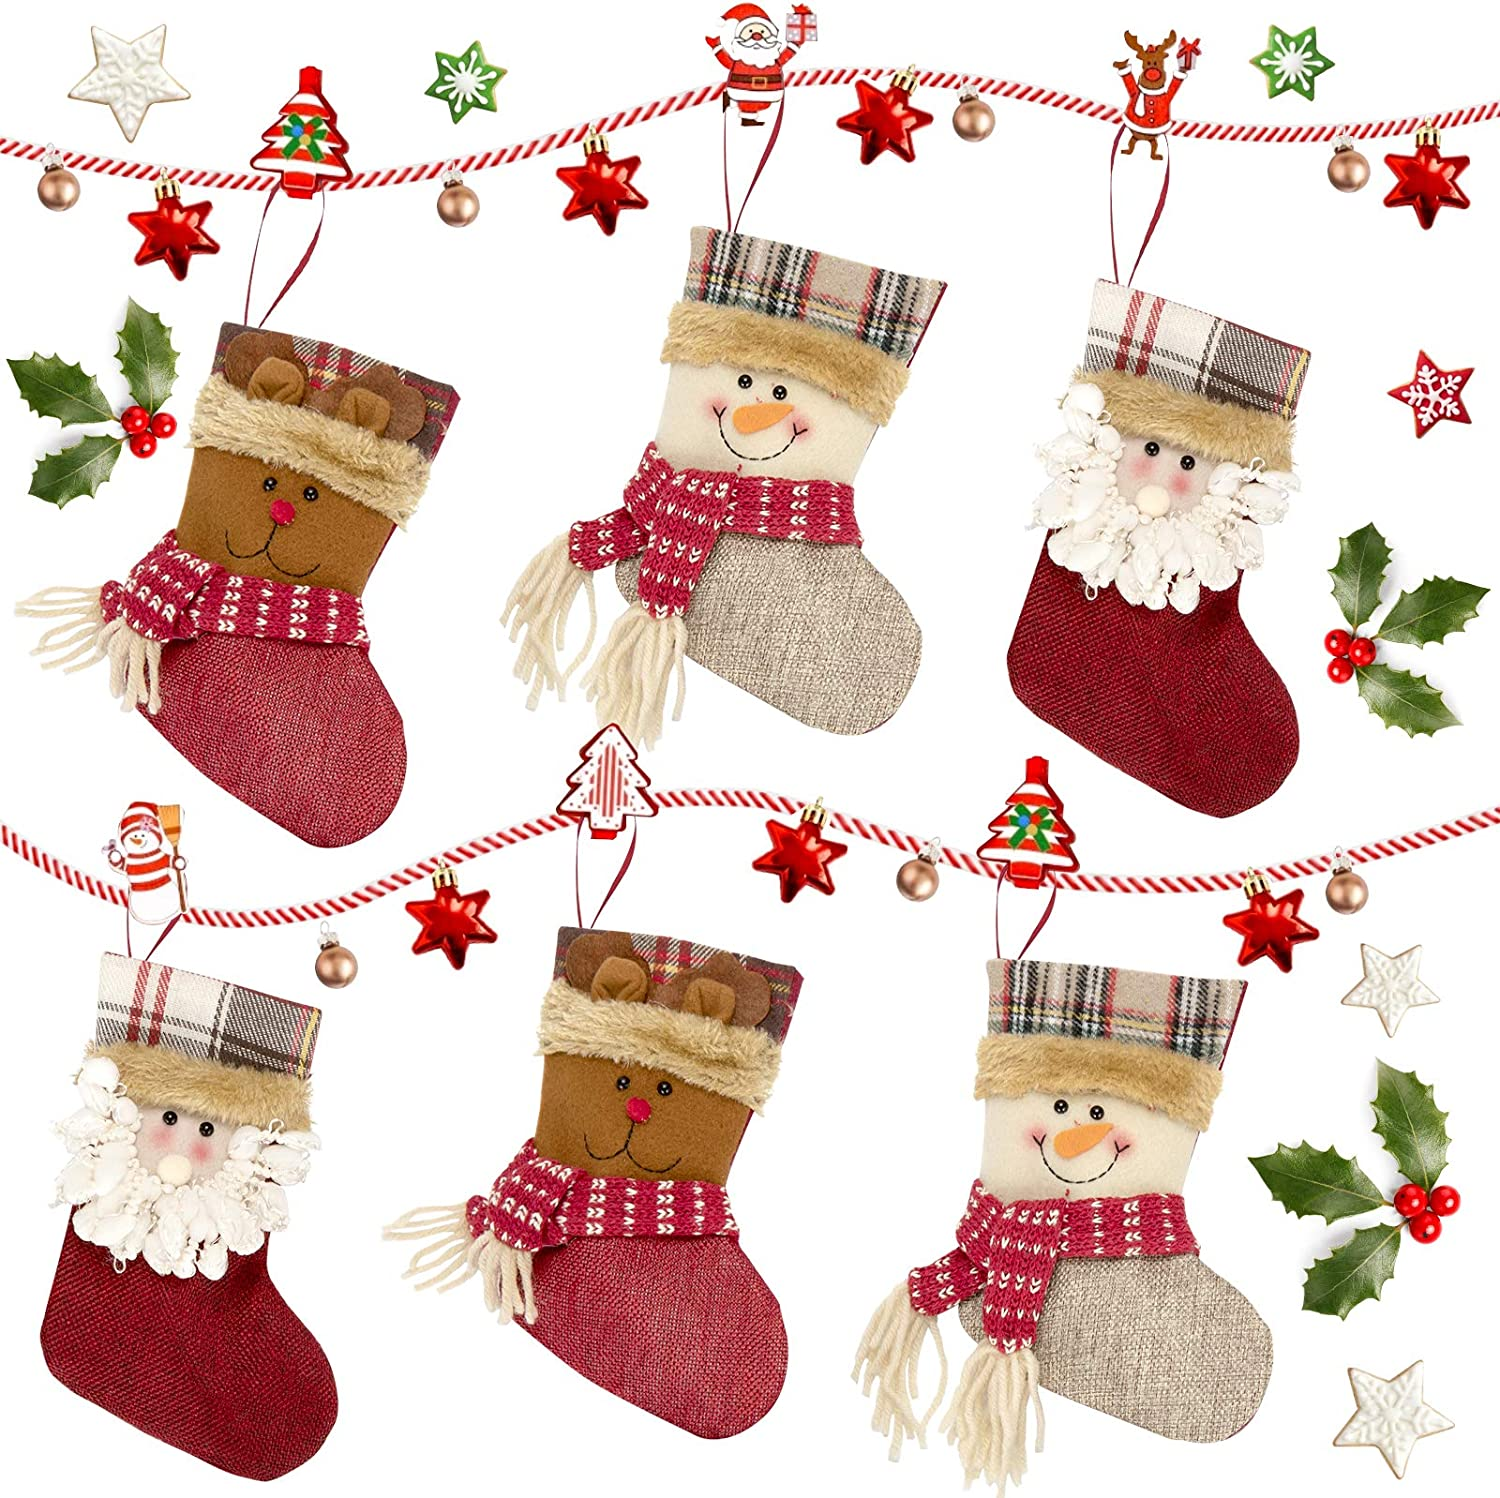 Red /& White Xmas Stockings Gift /& Candy Pouch Bag For Family Holiday Xmas Party Decorations Ucradle Christmas Stockings 6 Packs 7.5 Inches With Santa Claus Snowman Elk Pattern